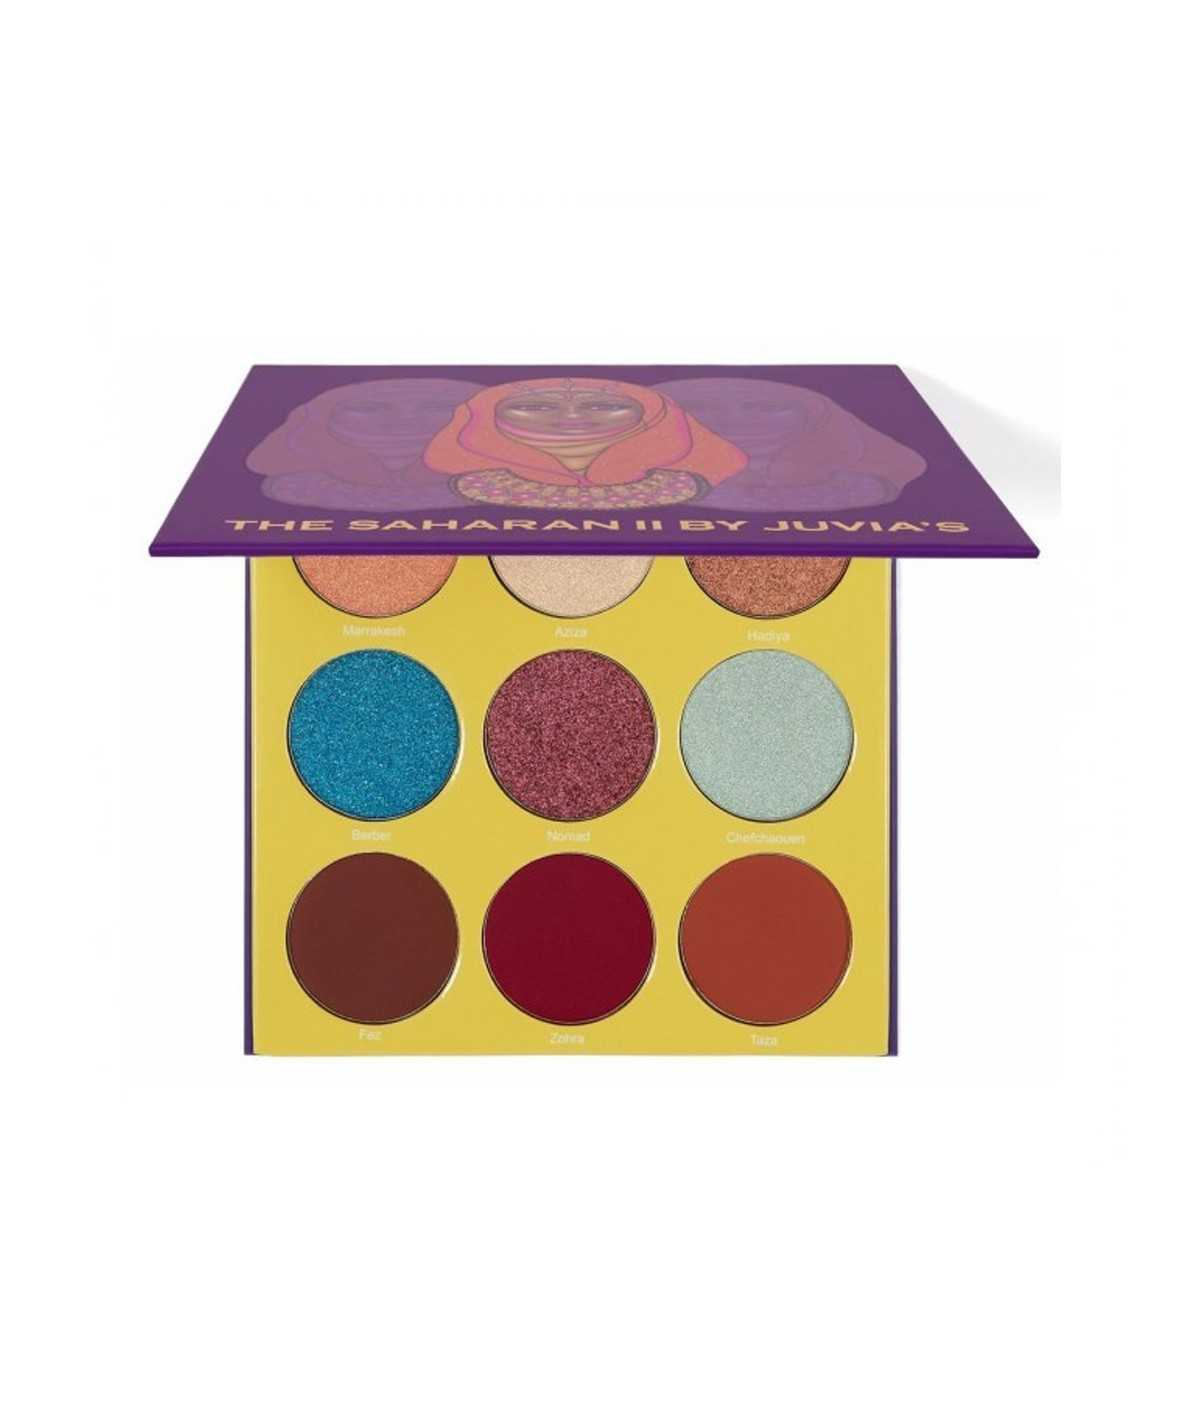 Juvias Place The Saharan 2 Palette